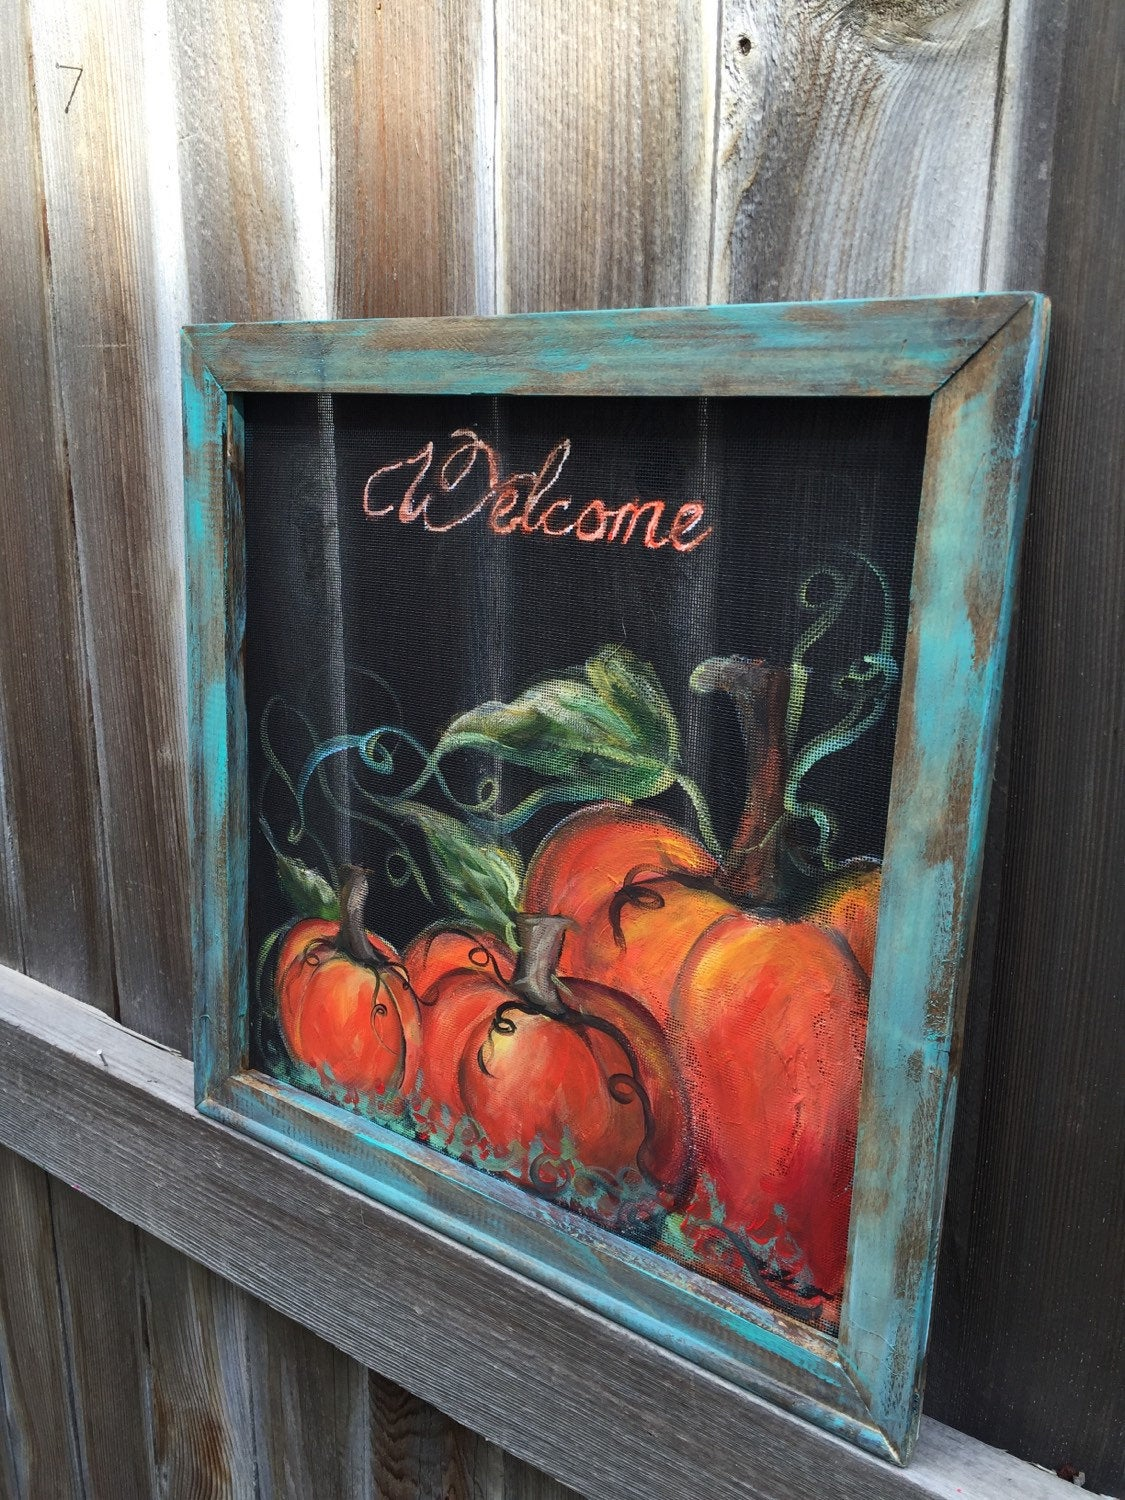 Rustic pumpkin welcome sign with teal frame